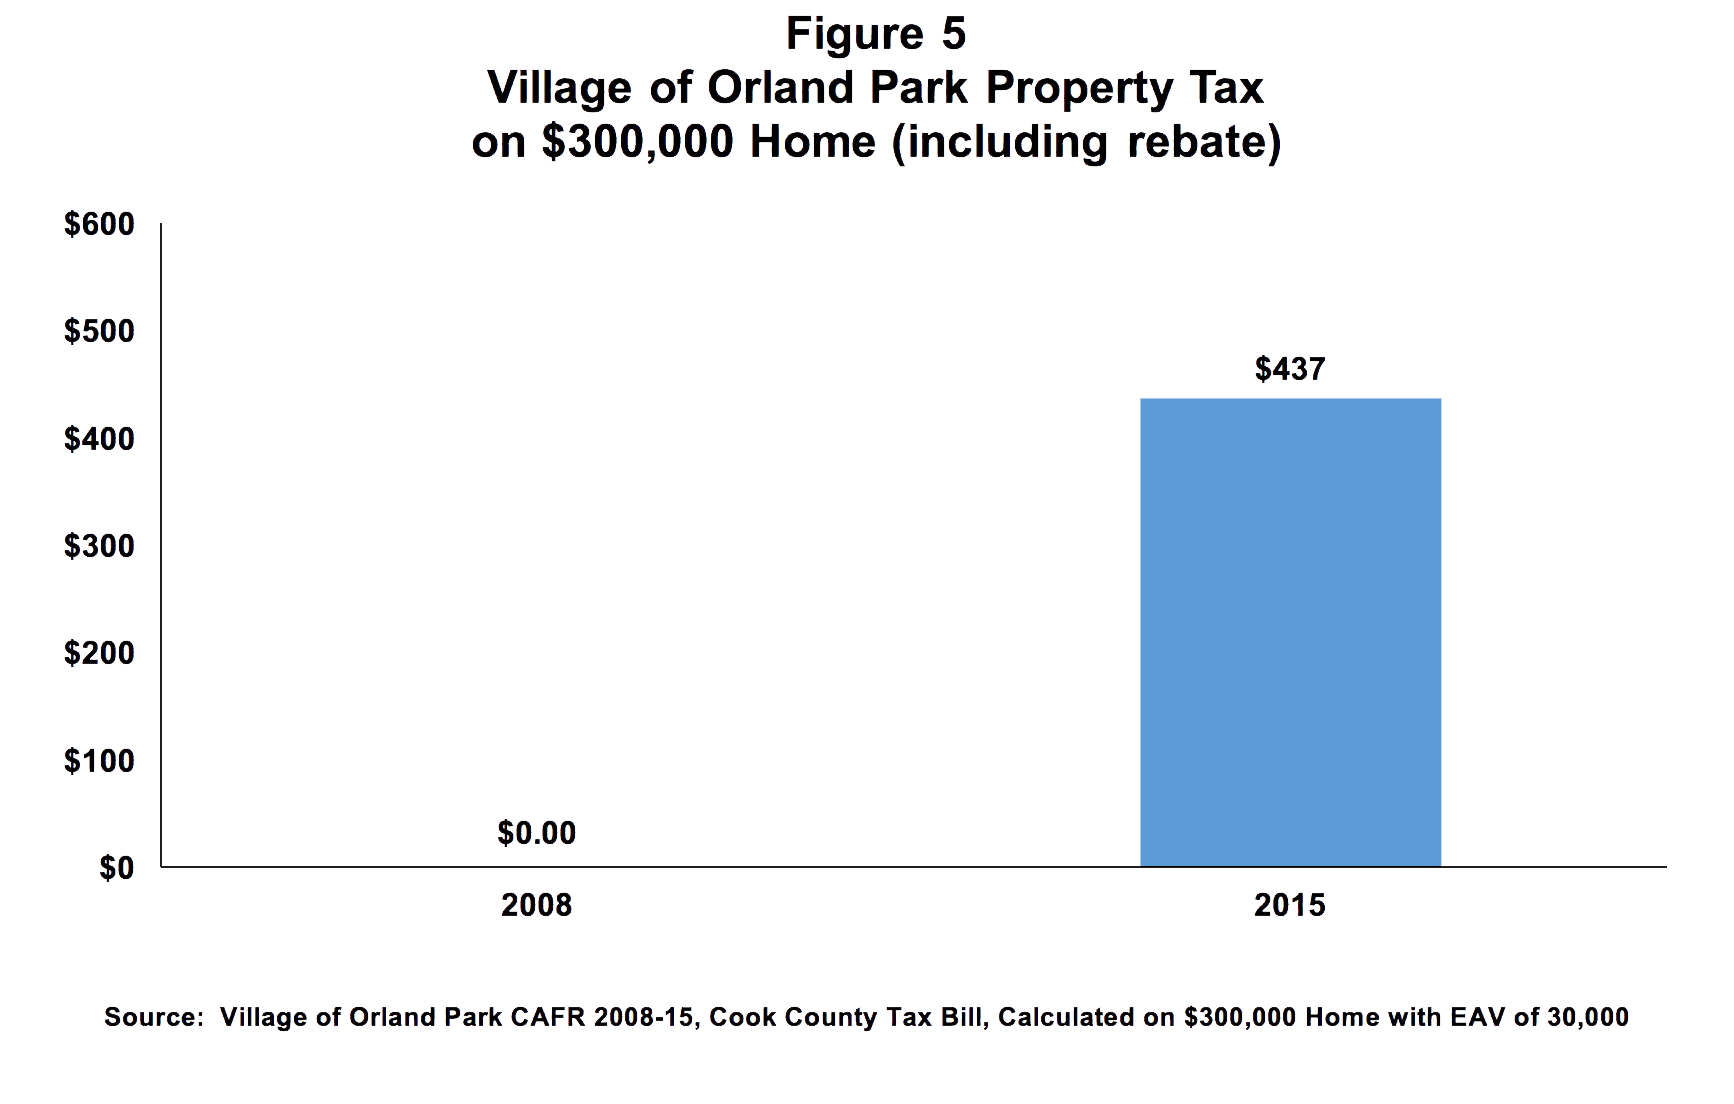 Village of Orland Park Property Tax on 300k Home including rebate Chart